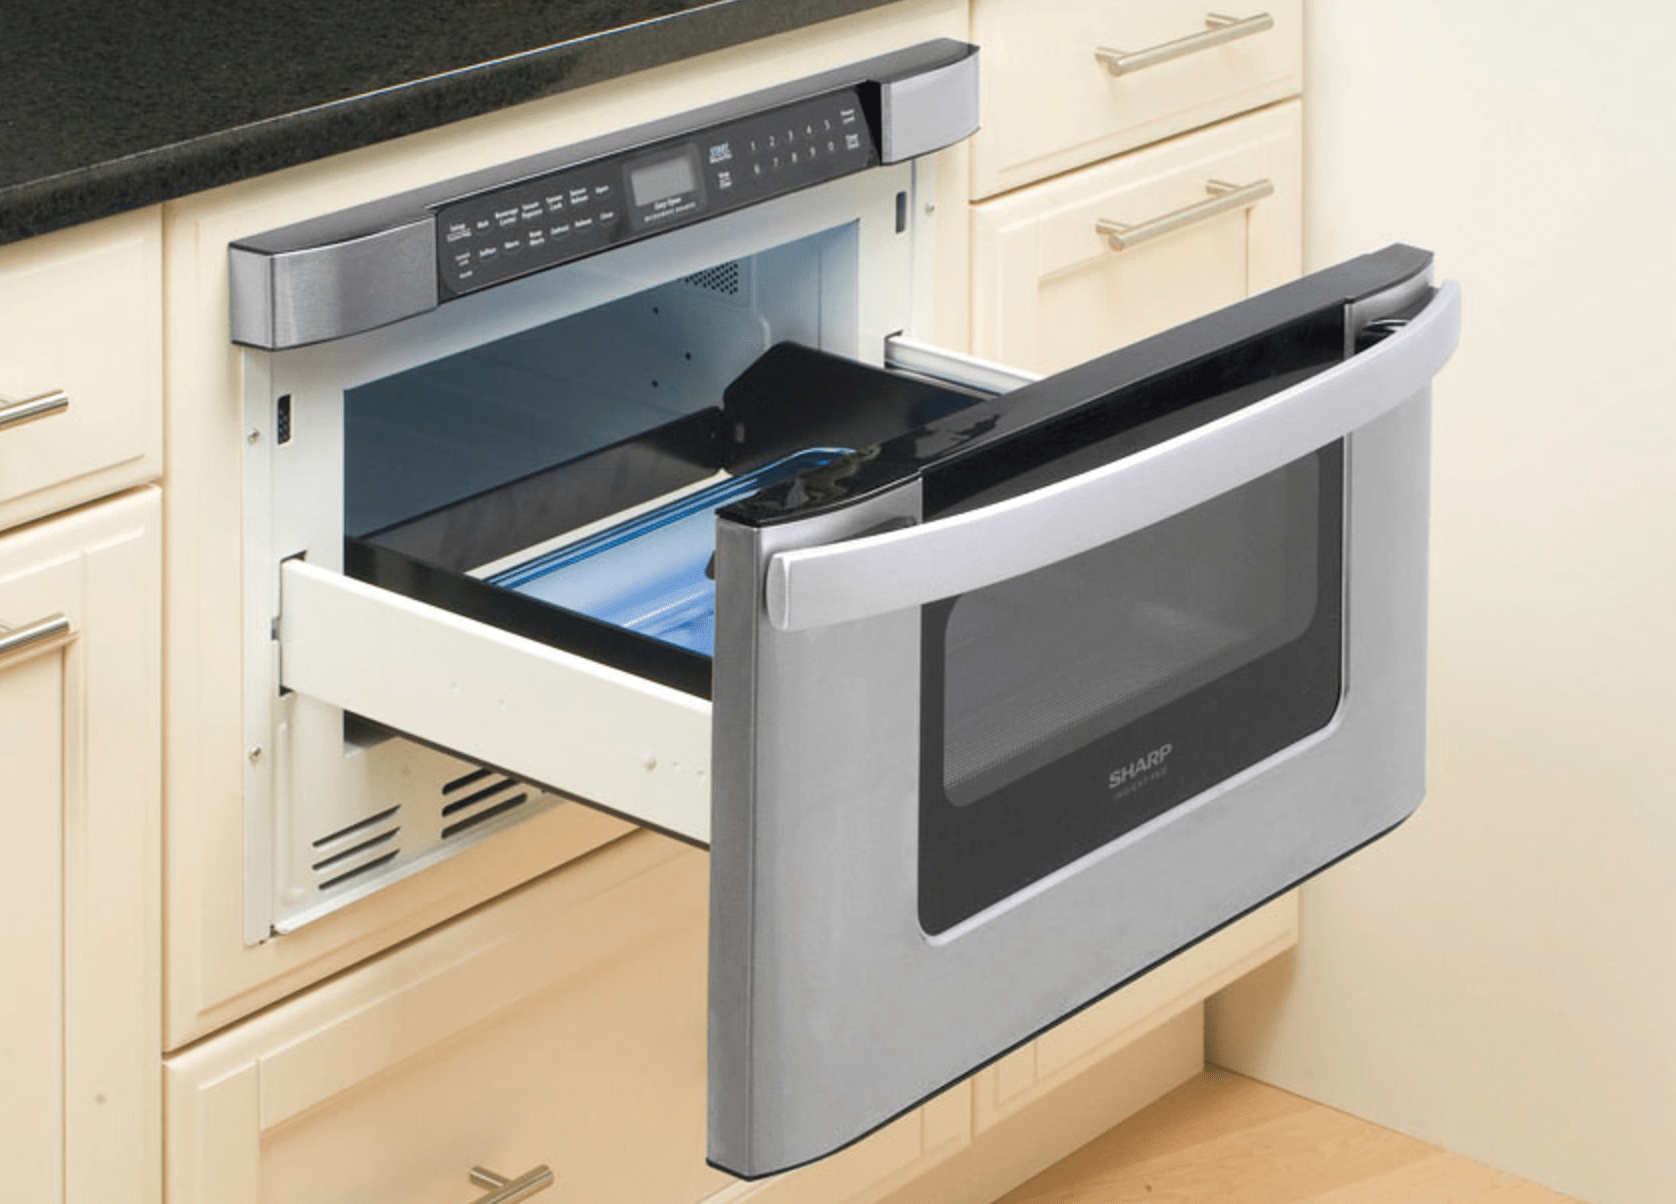 sharp kb6524psy 24 microwave drawer with towel bar handle